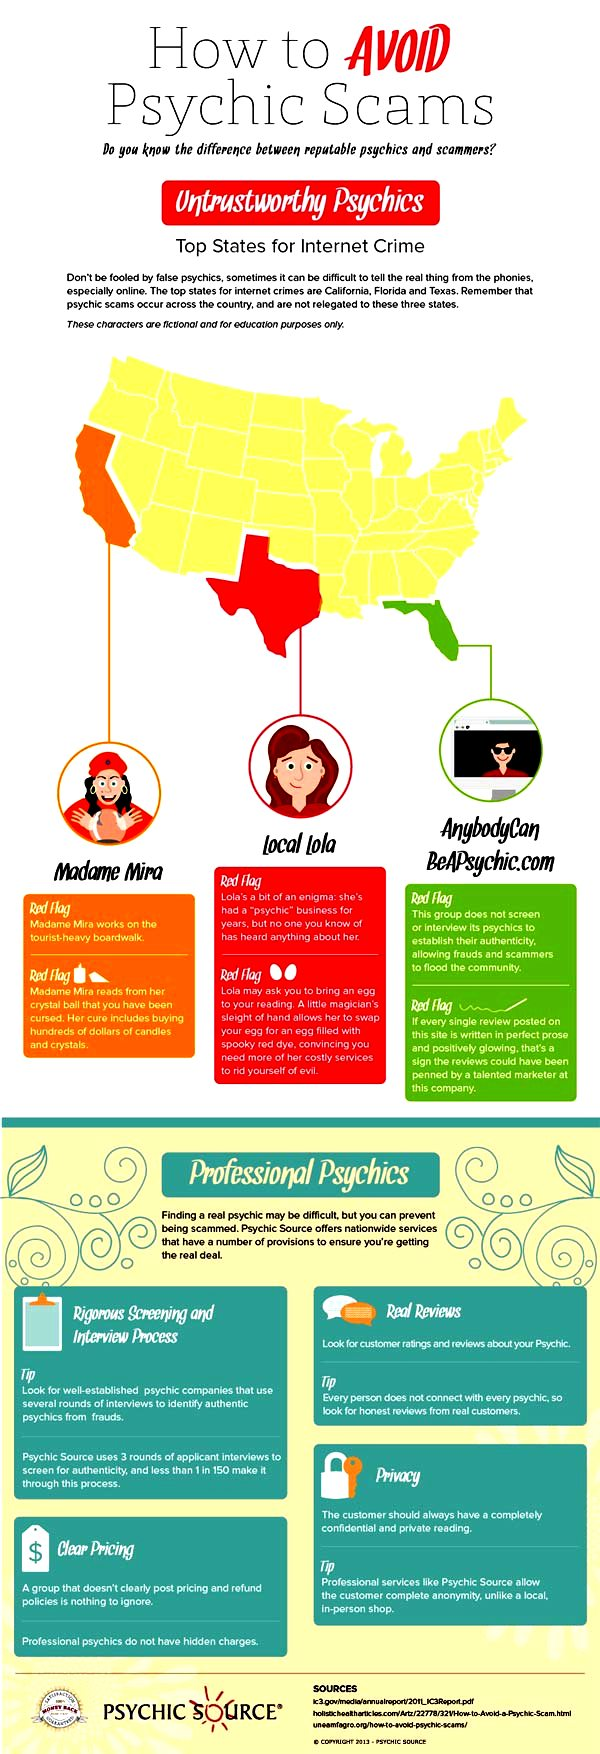 psychic-scams-infographic